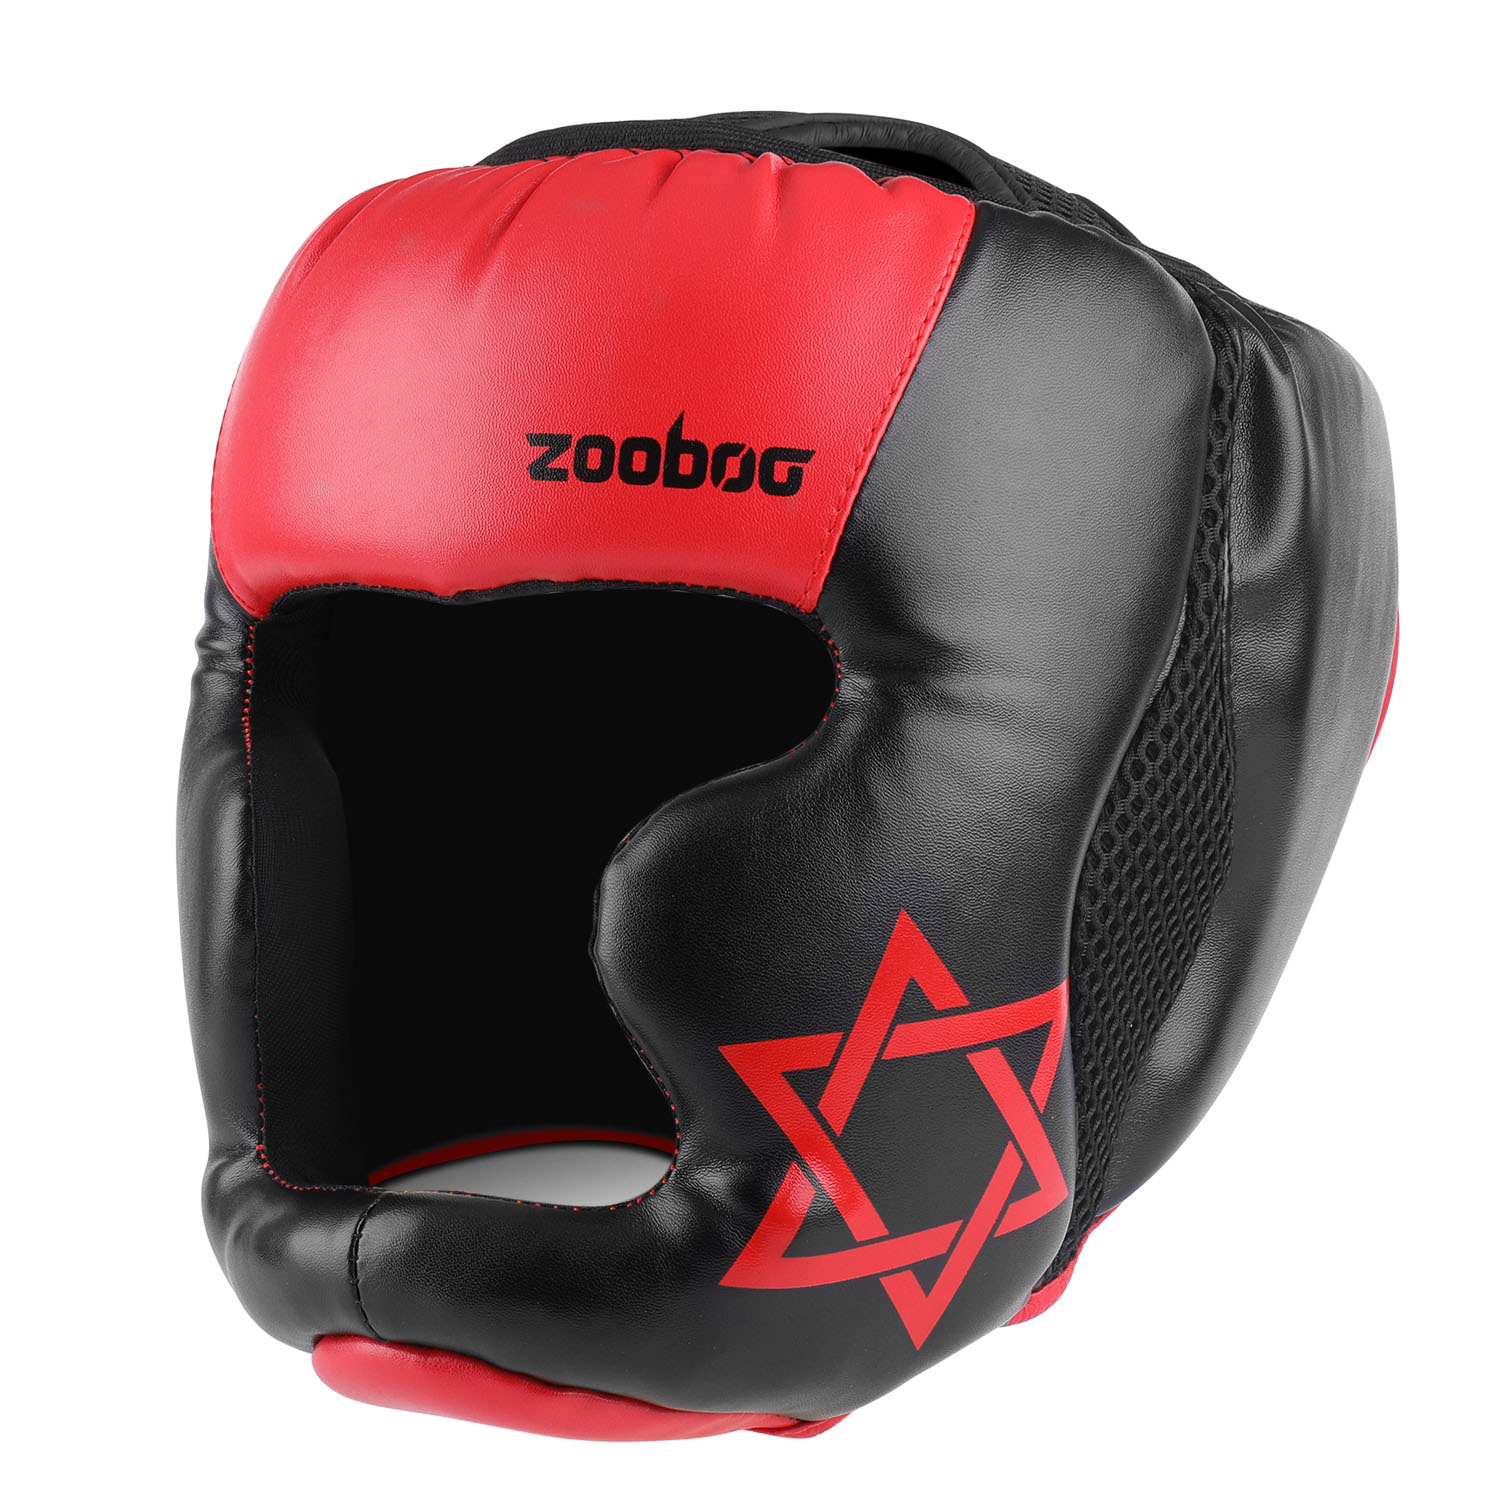 Karate Competition Training Gloves Kickboxing protector All sizes!